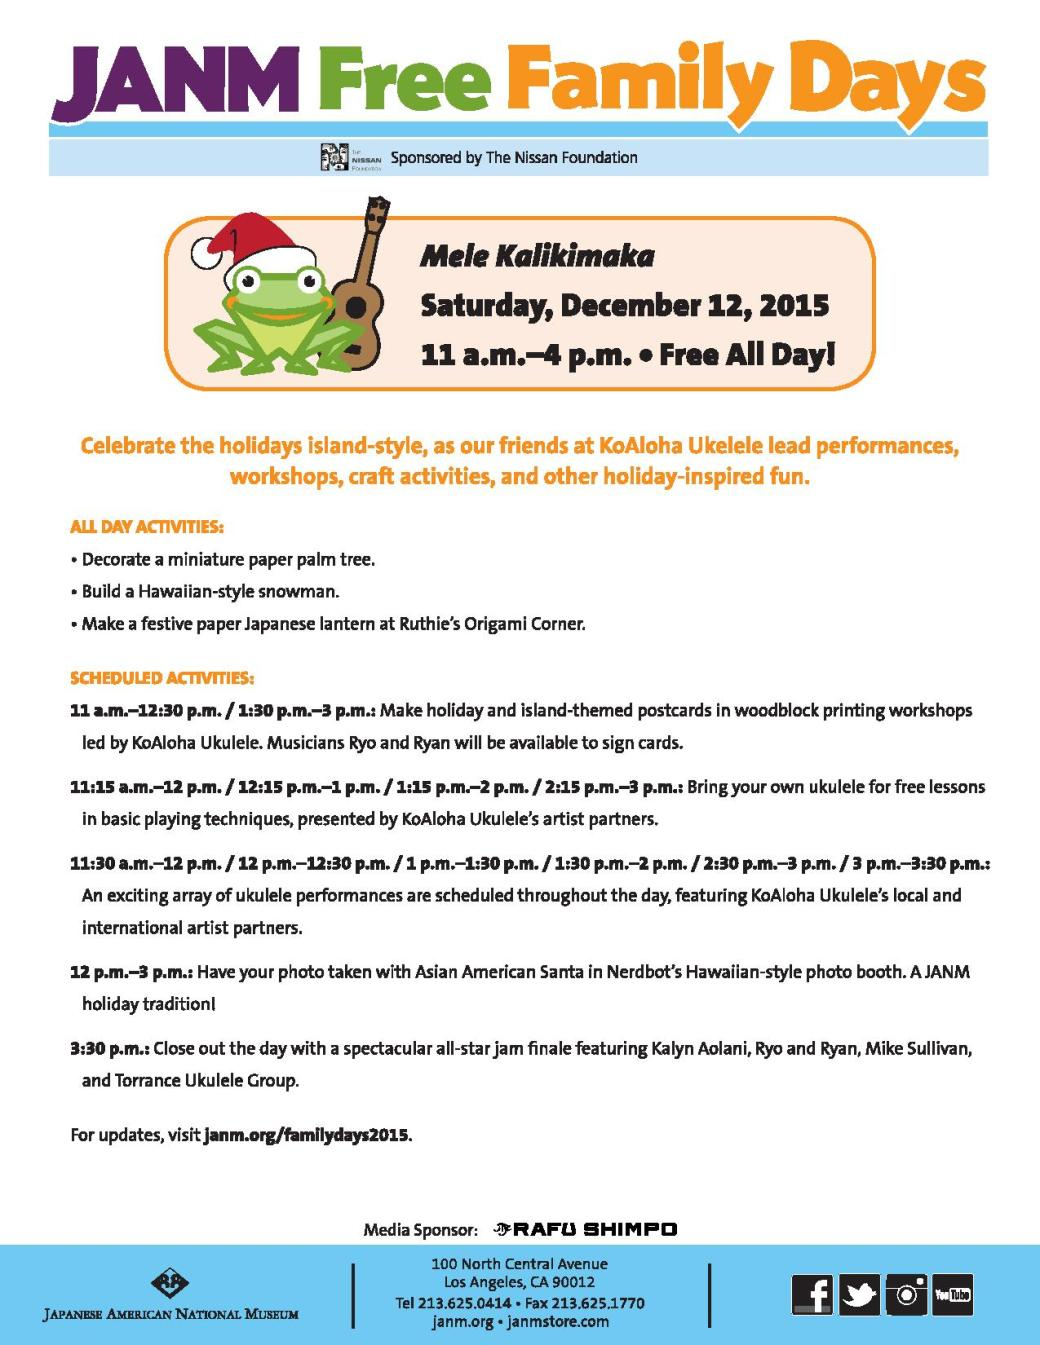 JANM-Free-Family-Days-2015-December-MeleKalikimaka-flyer-FINAL-page-001